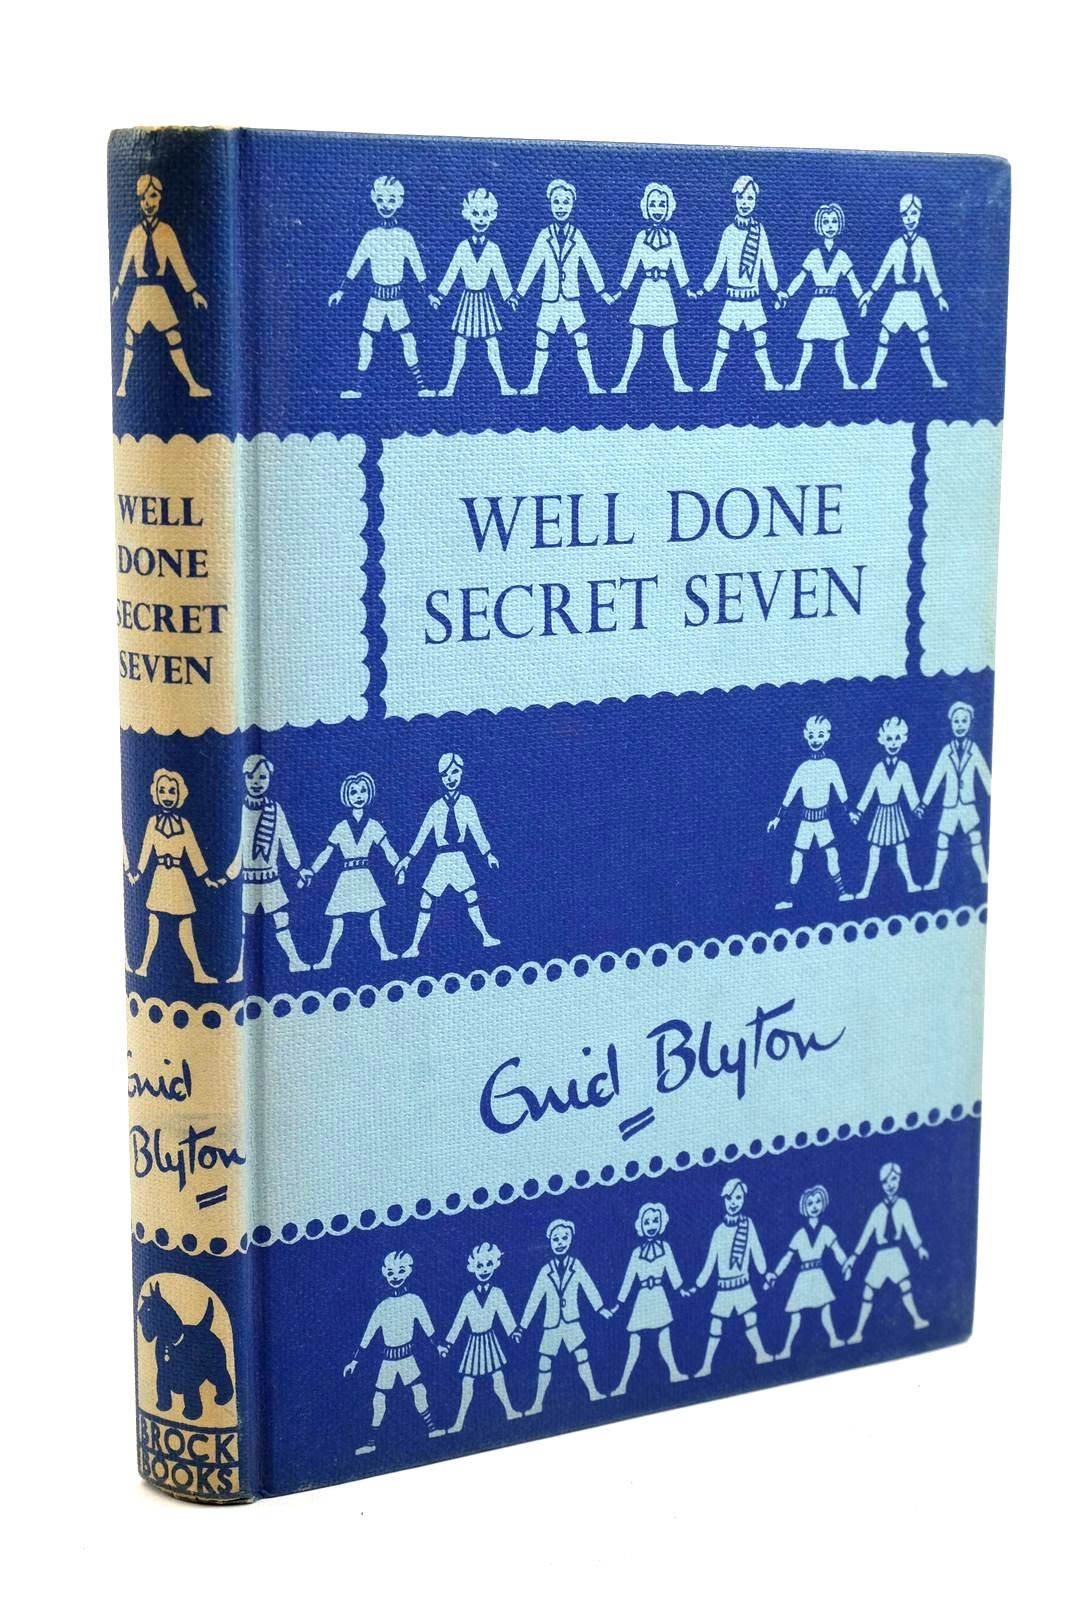 Photo of WELL DONE SECRET SEVEN written by Blyton, Enid illustrated by Brook, George published by Brockhampton Press Ltd. (STOCK CODE: 1320723)  for sale by Stella & Rose's Books